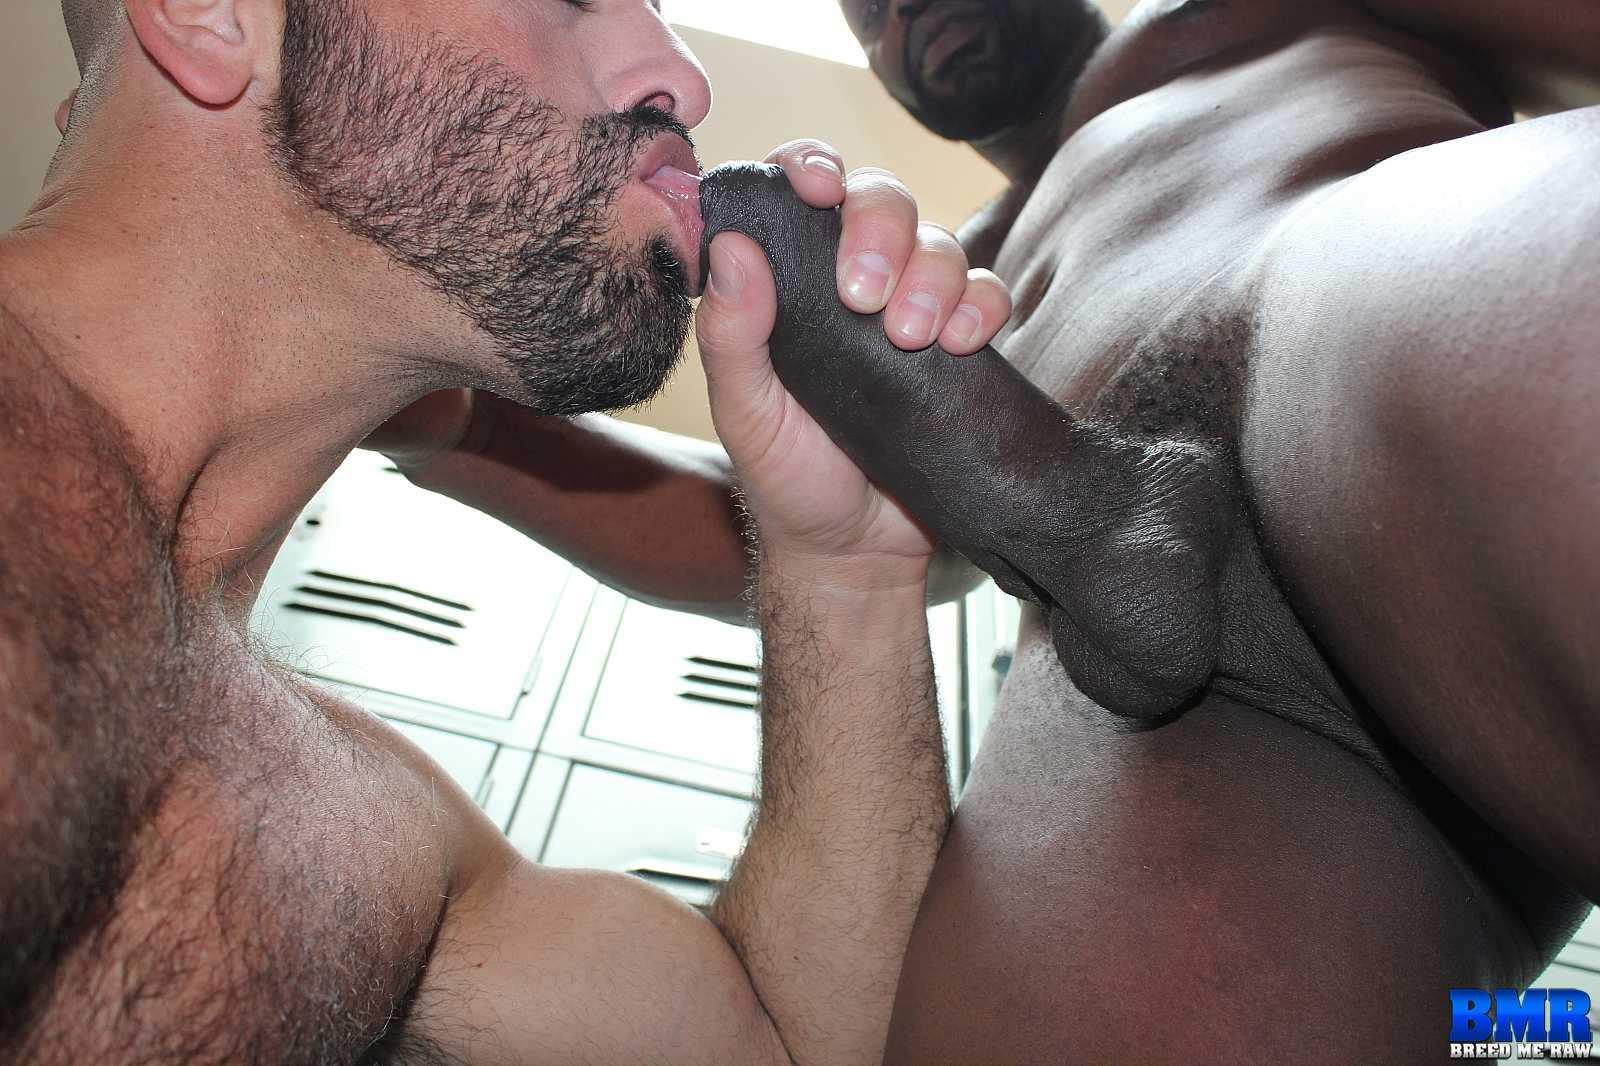 Breed-Me-Raw-Cutler-X-and-Adam-Russo-Black-Guy-With-Big-Black-Cock-Barebacking-White-Guy-Amateur-Gay-Porn-03 Real Life Boyfriends Cutler X Barebacking Adam Russo